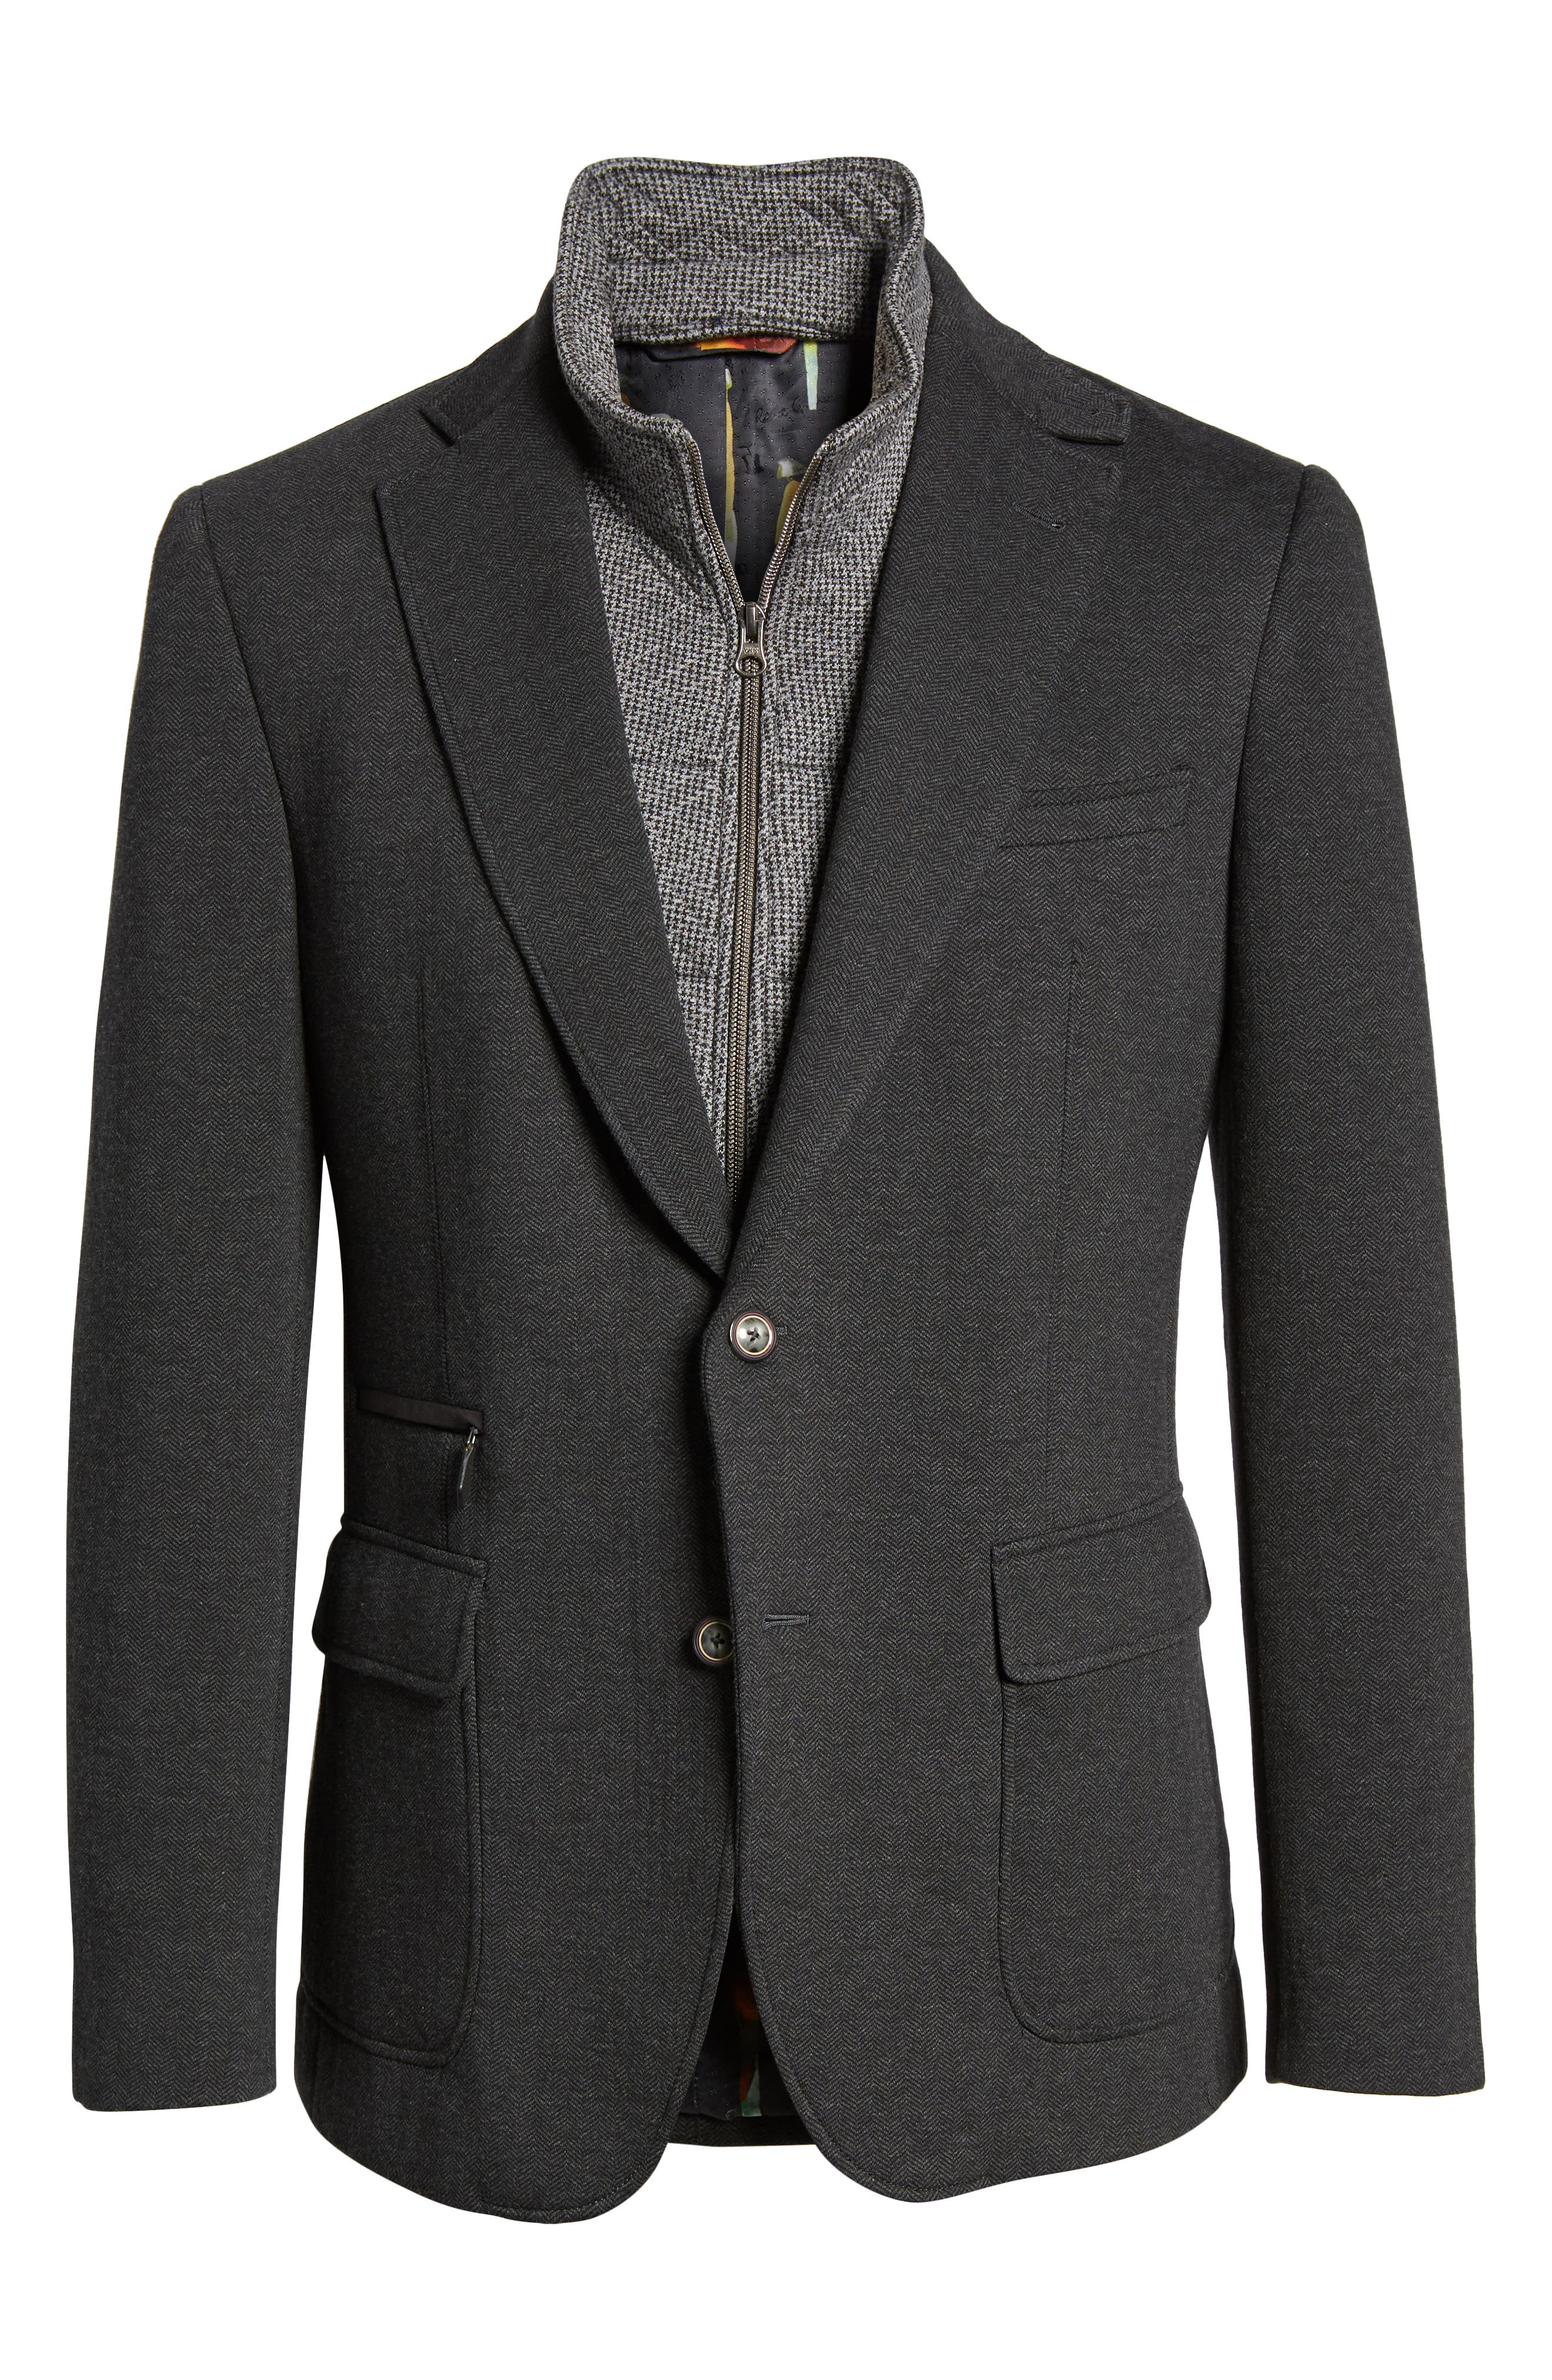 Downhill Tailored Fit Sport Coat,                             Alternate thumbnail 5, color,                             020